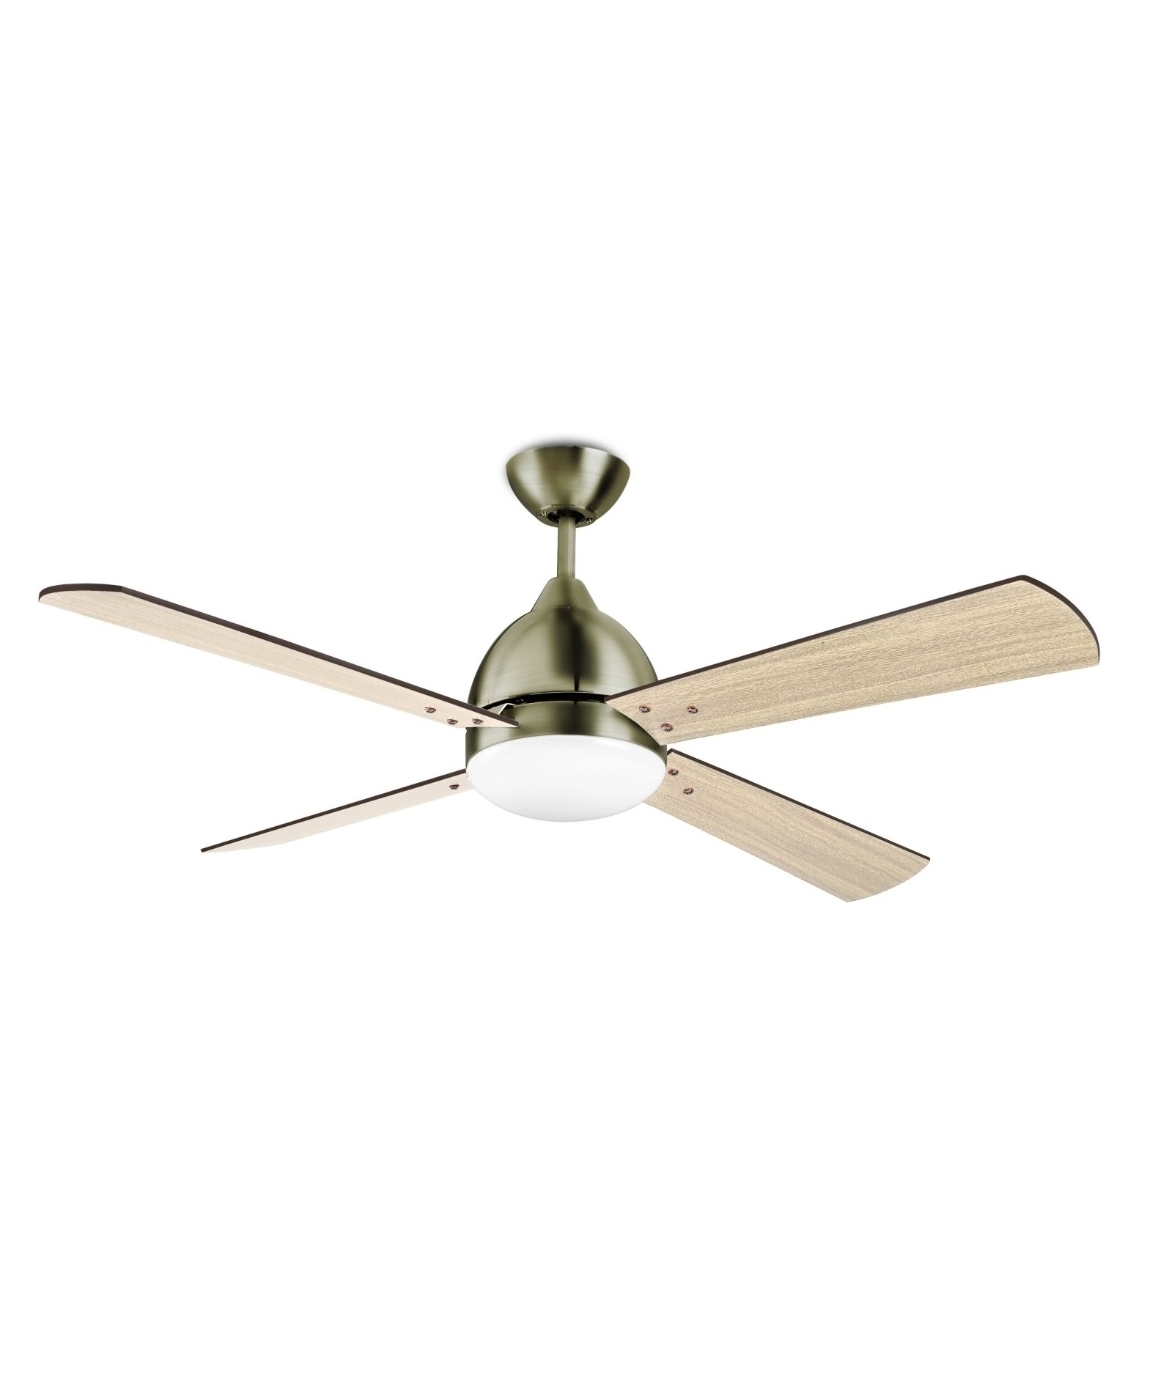 large dp fans amazon with com quorum wall ceiling satin control nickel light modesto fan